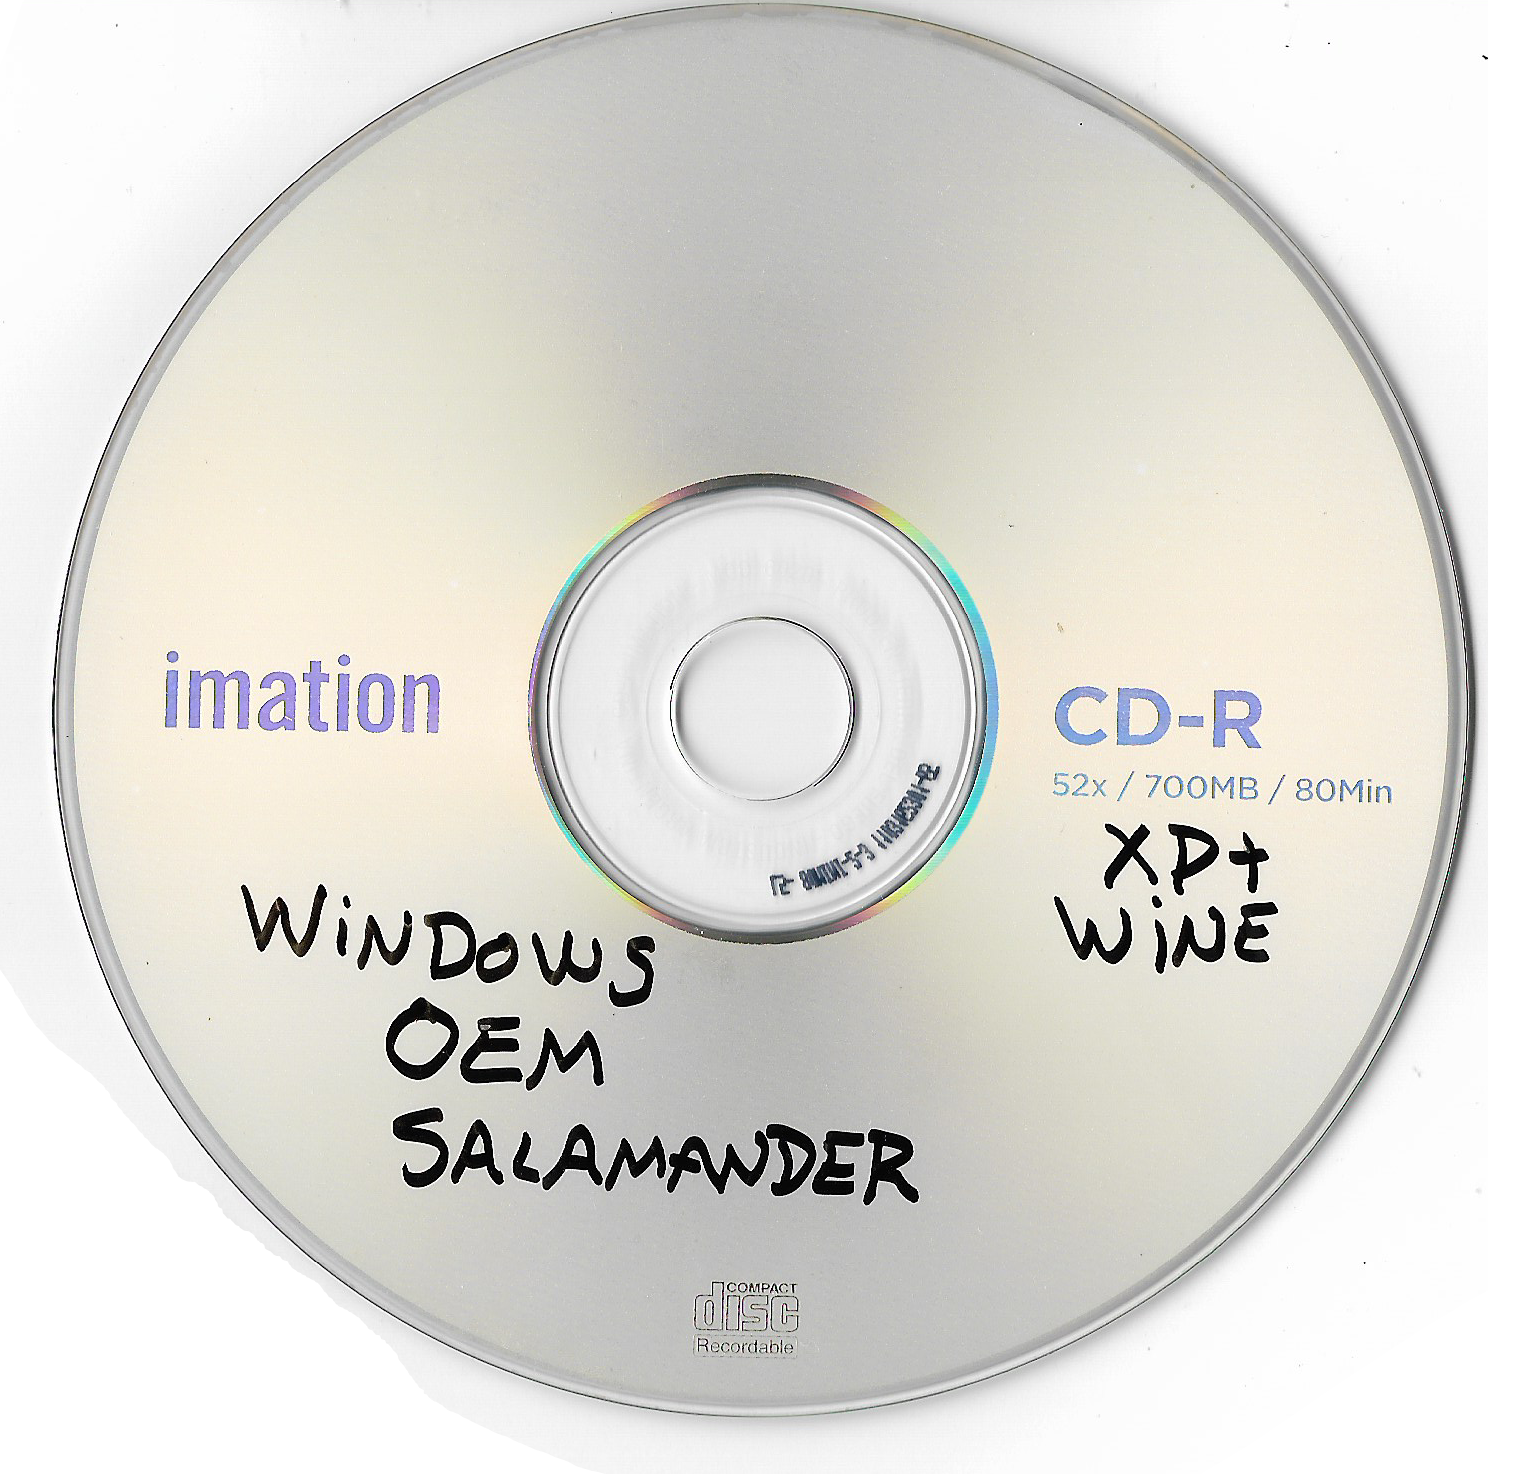 Windows OEM Salamander